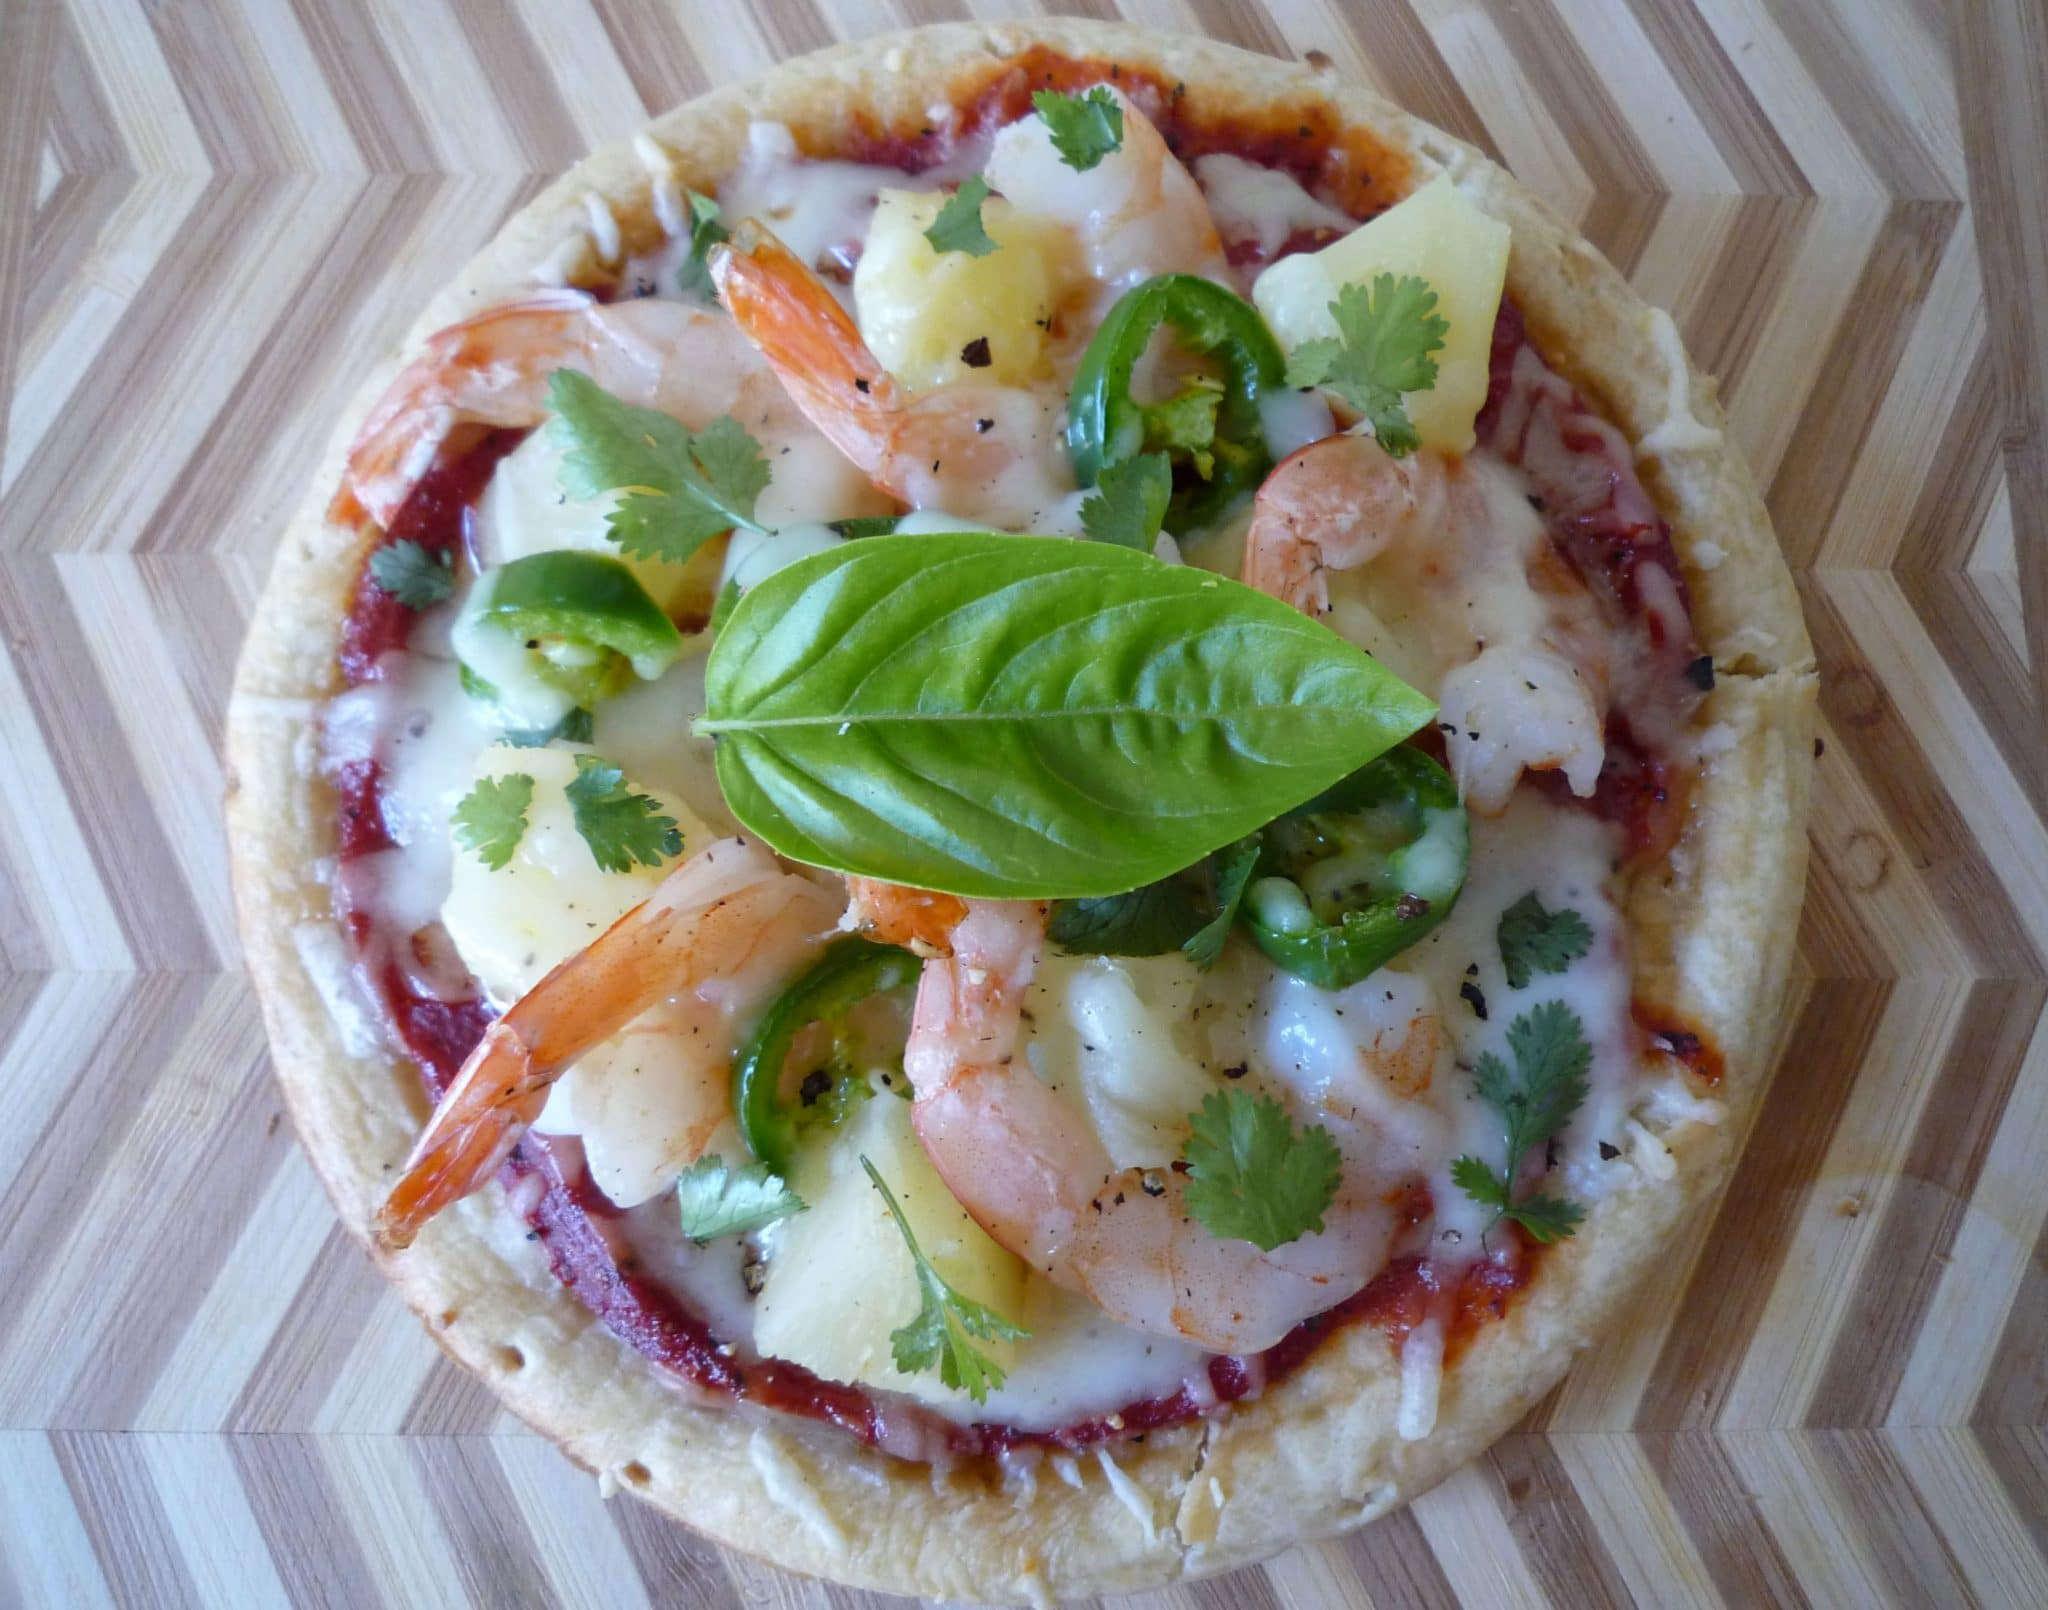 Shrimp and Pineapple Personal Pizza with Jalapenos